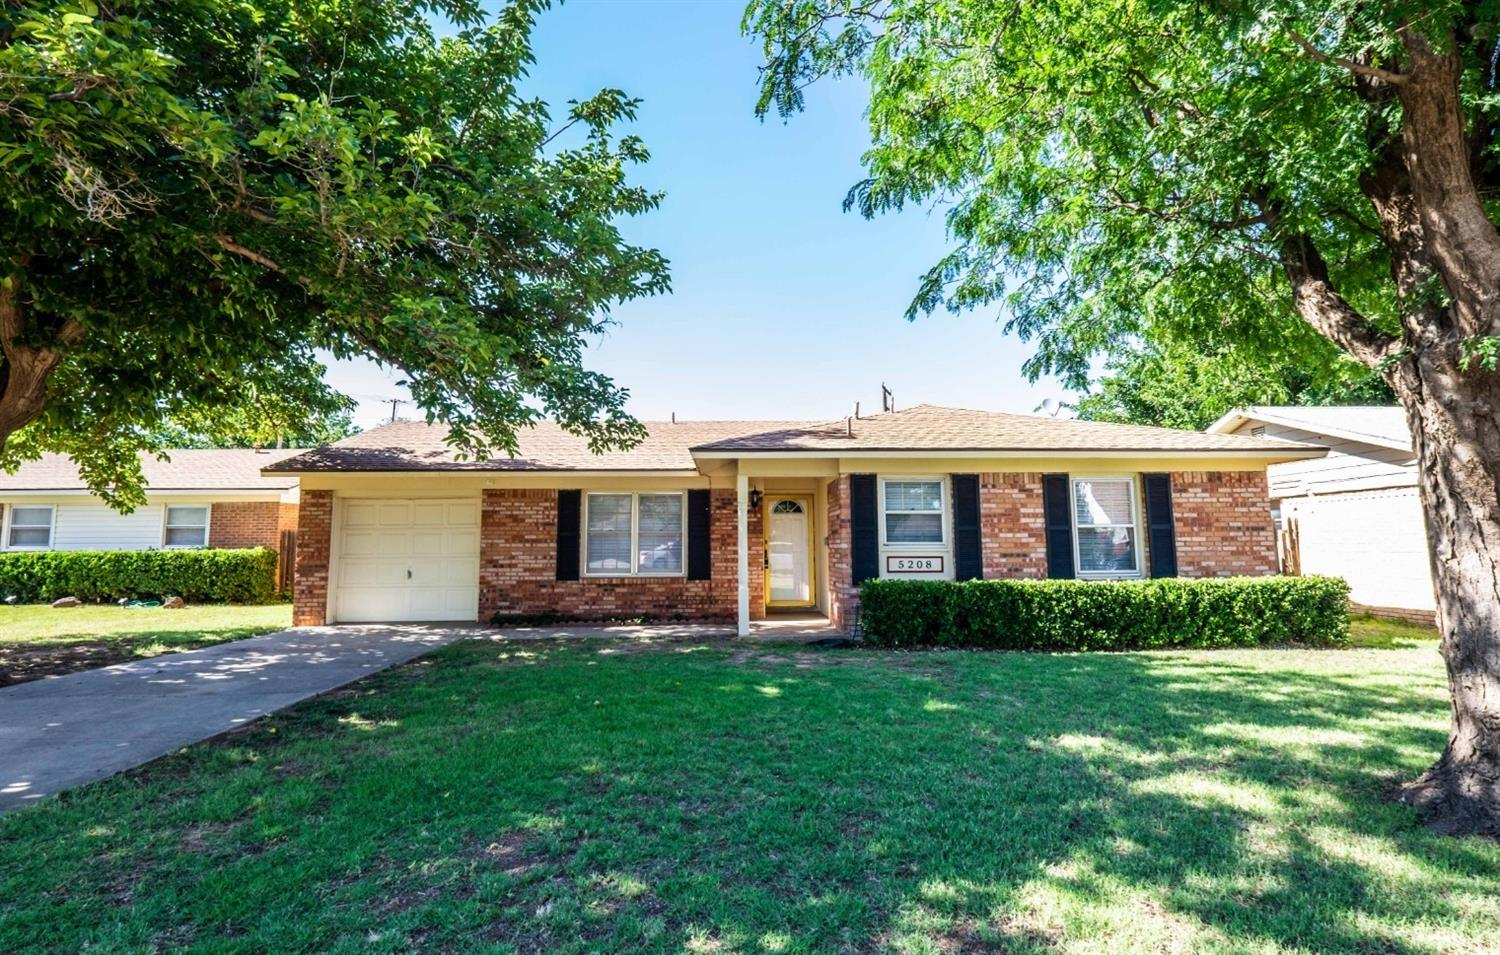 5208 46th Street, Lubbock in Lubbock County, TX 79414 Home for Sale